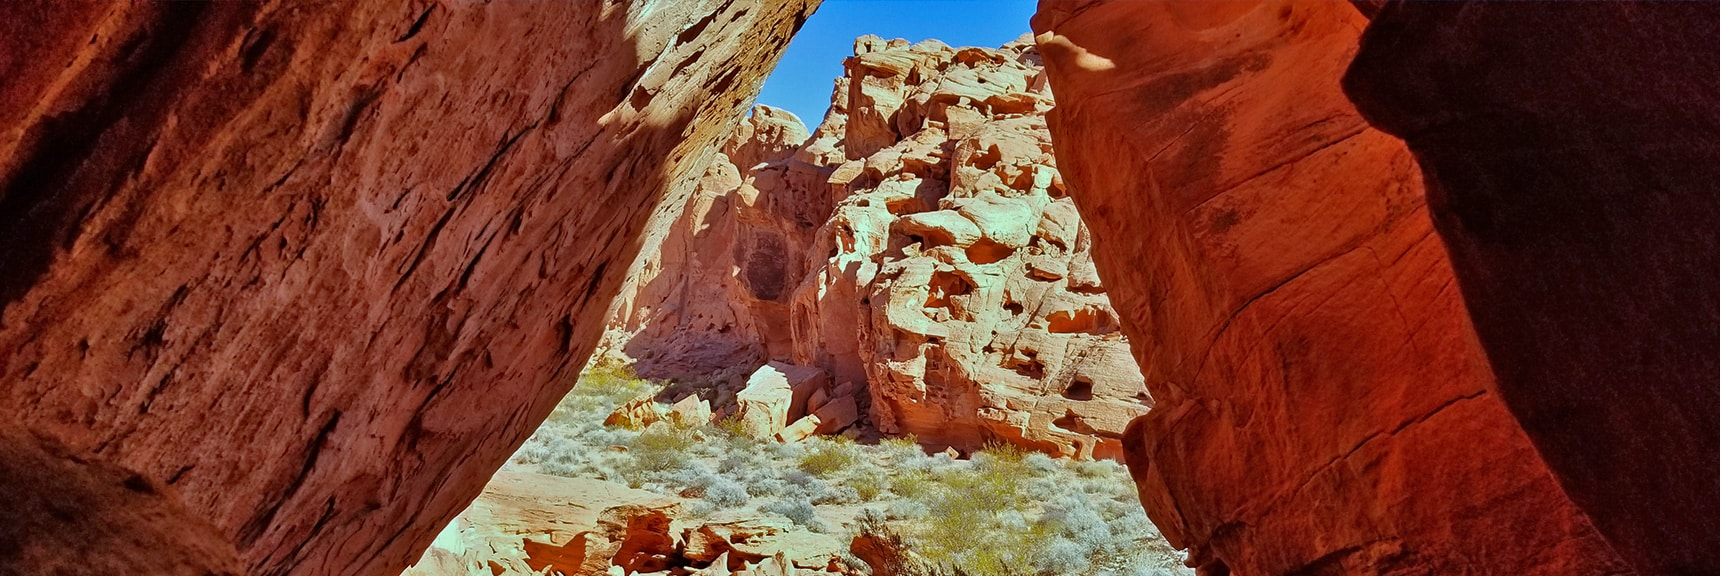 Viewing the Bowl Through Intricate Rock Passages | Bowl of Fire, Lake Mead National Recreation Area, Nevada